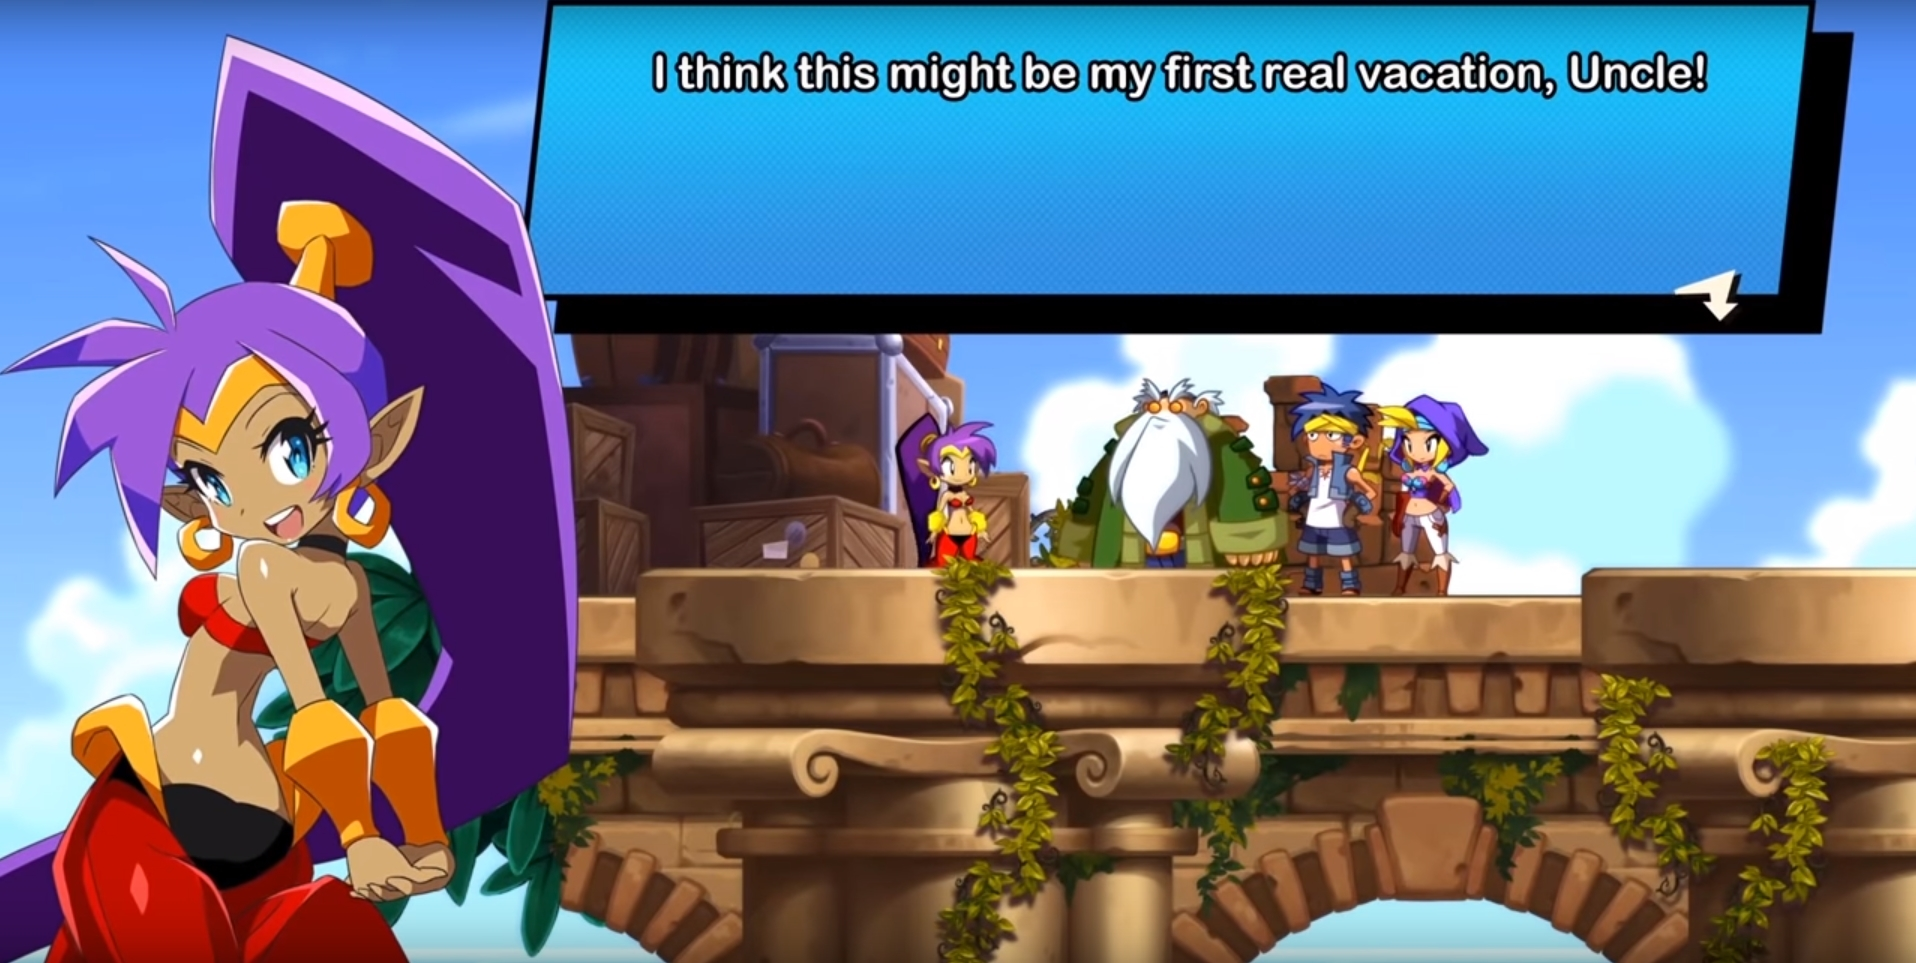 Shantae And The Seven Sirens Co-Creator Matt Bozon Discusses Shantae In Recent Interview With Goomba Stomp